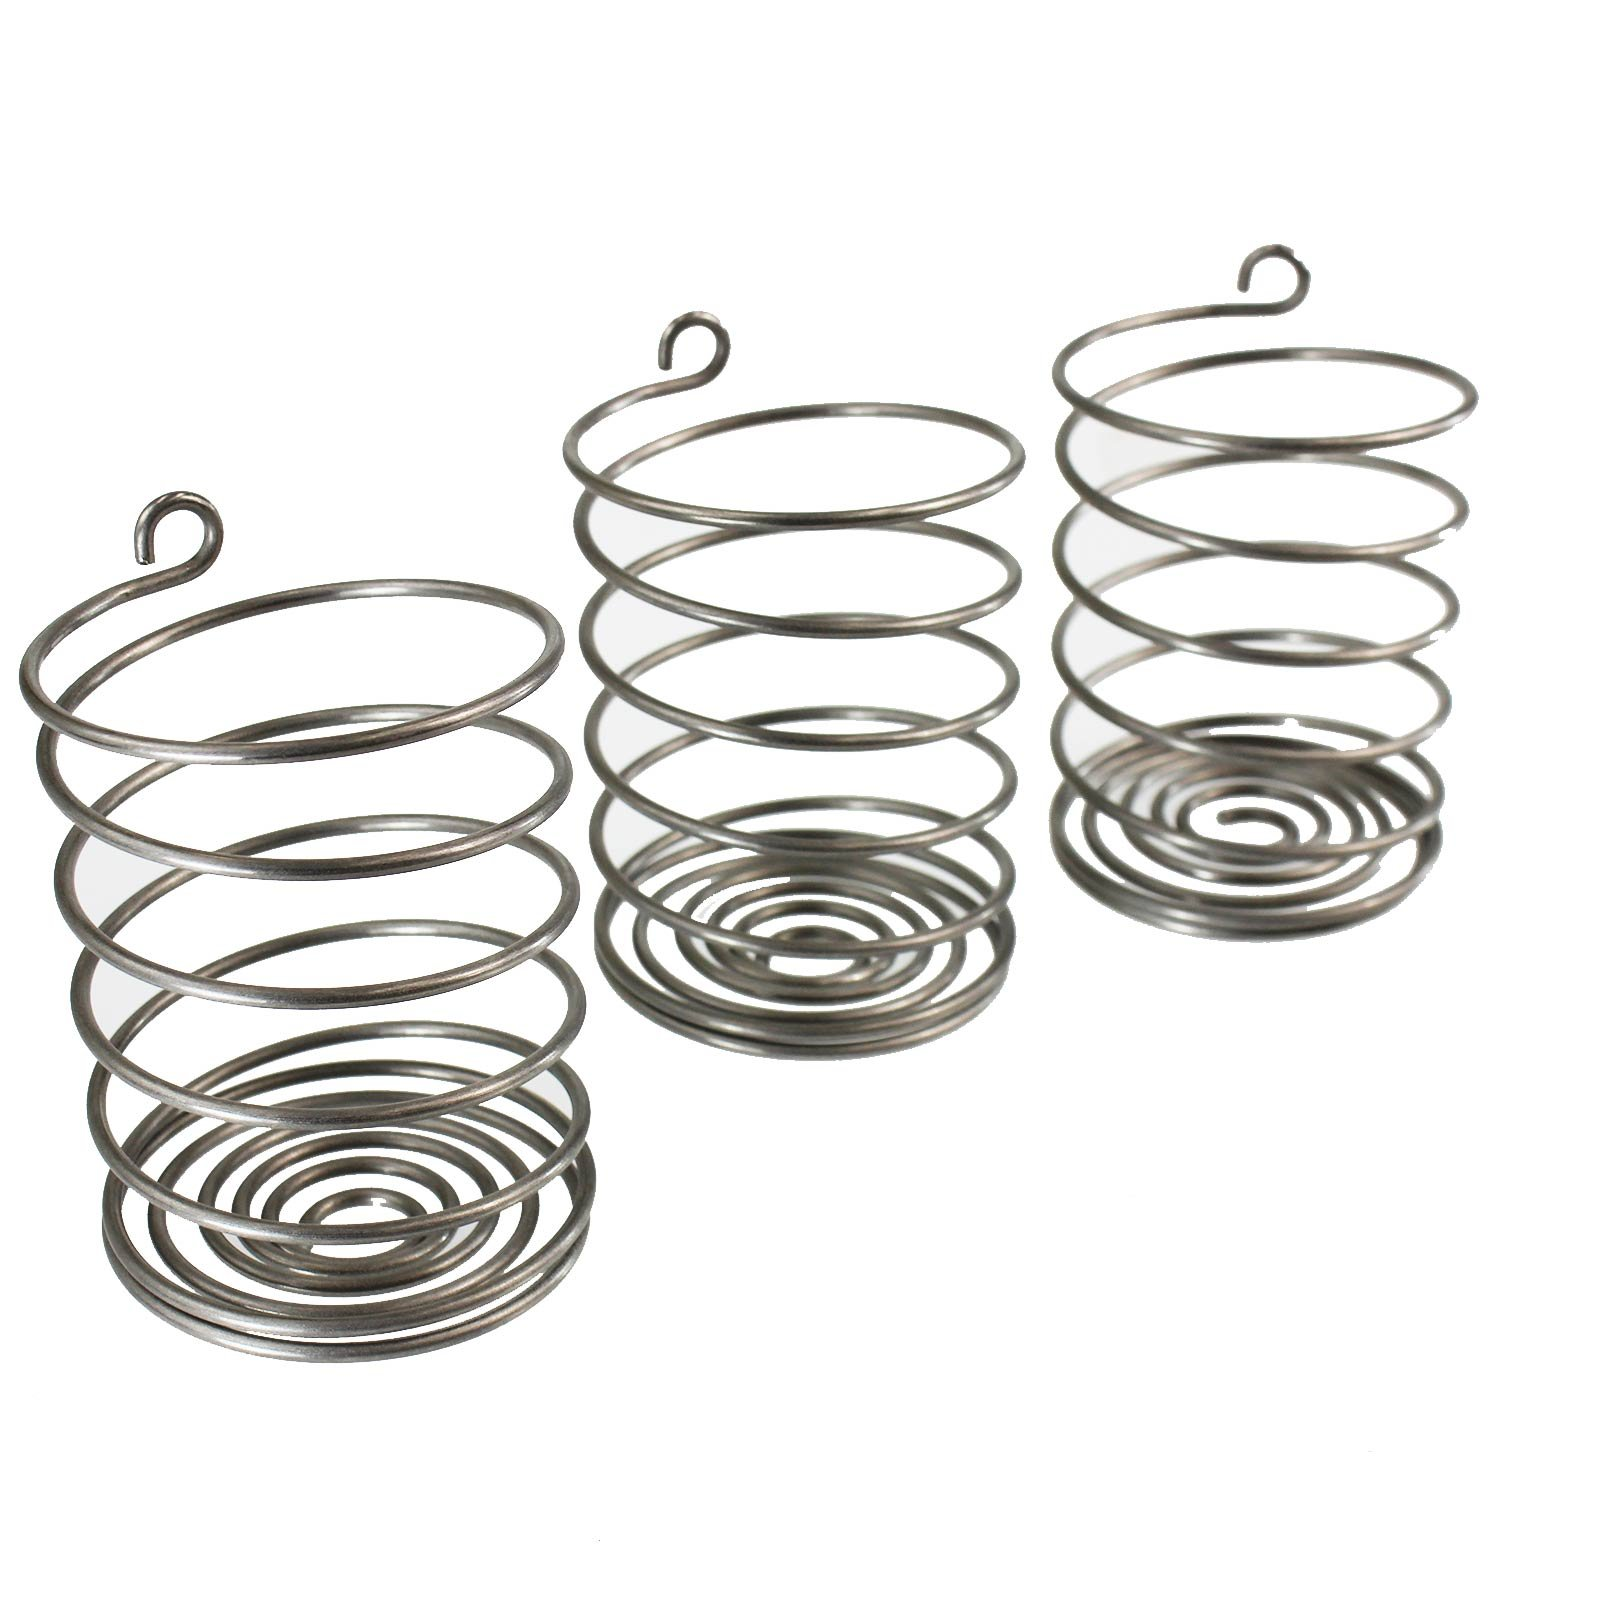 T&Co. Stainless Steel Pickle Helix Fermenter Weight Coils - Pack of 3 - For Wide Mouth Mason Jars Fermenting - Best Way To Hold Vegetables Under Water For Fermentation by Trellis & Co.